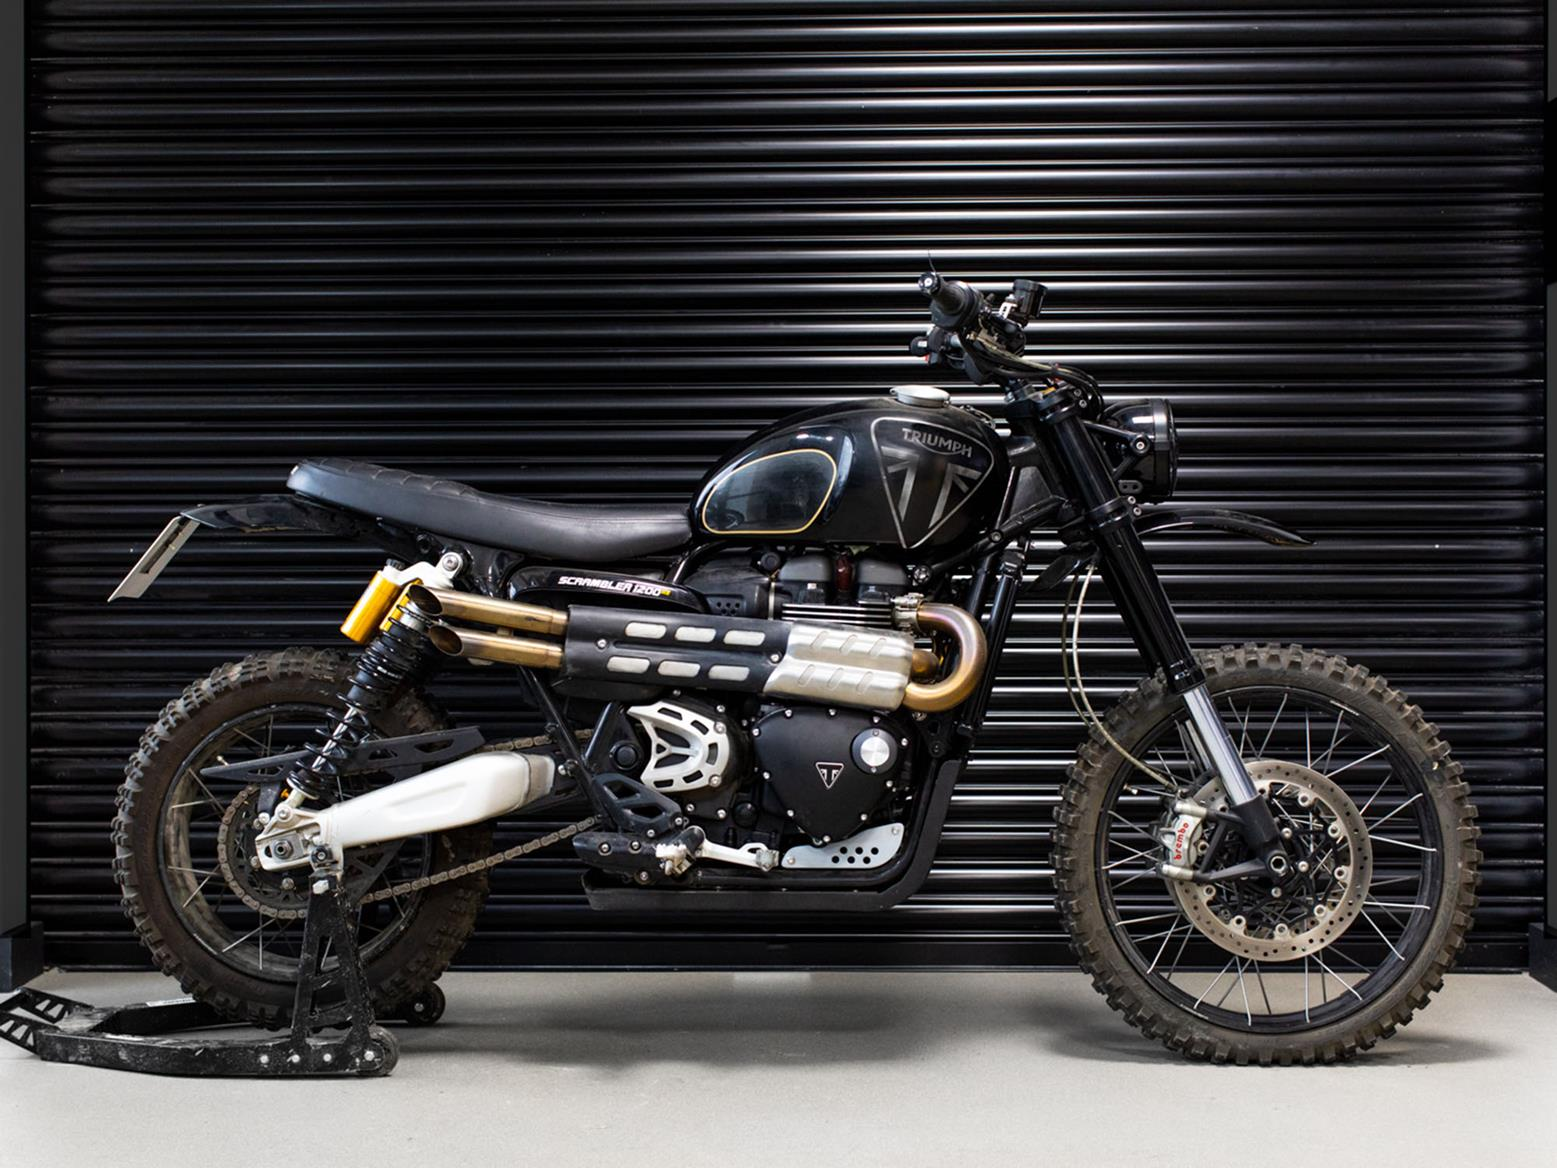 James Bond Triumph Scrambler 1200